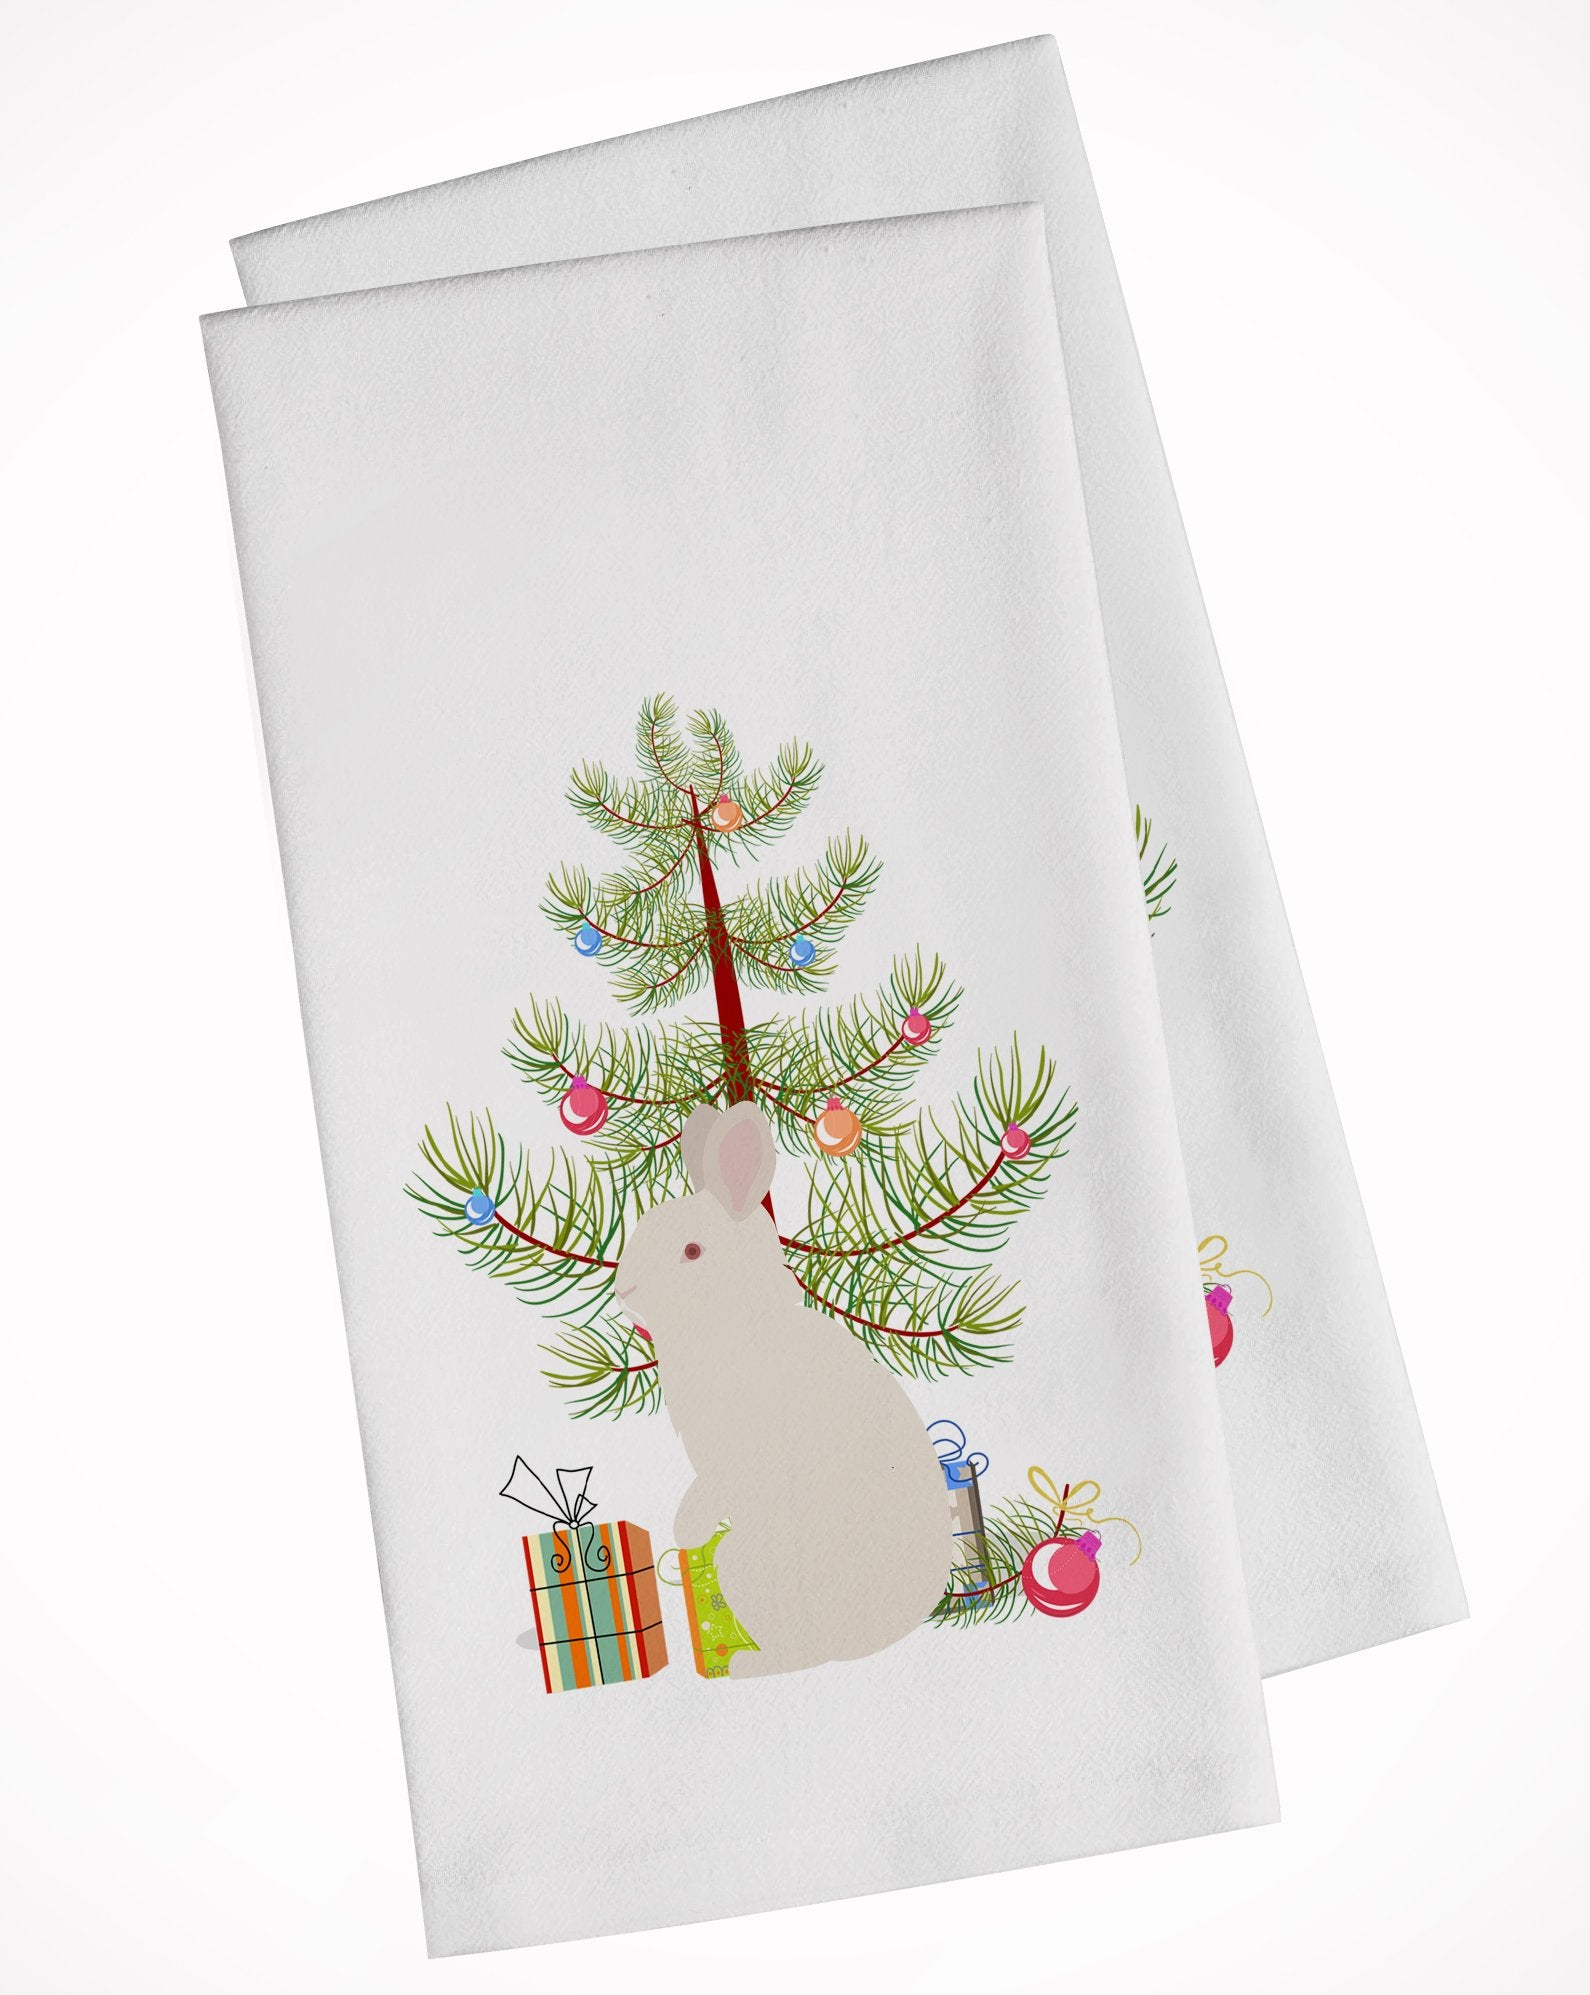 New Zealand White Rabbit Christmas White Kitchen Towel Set of 2 BB9332WTKT by Caroline's Treasures